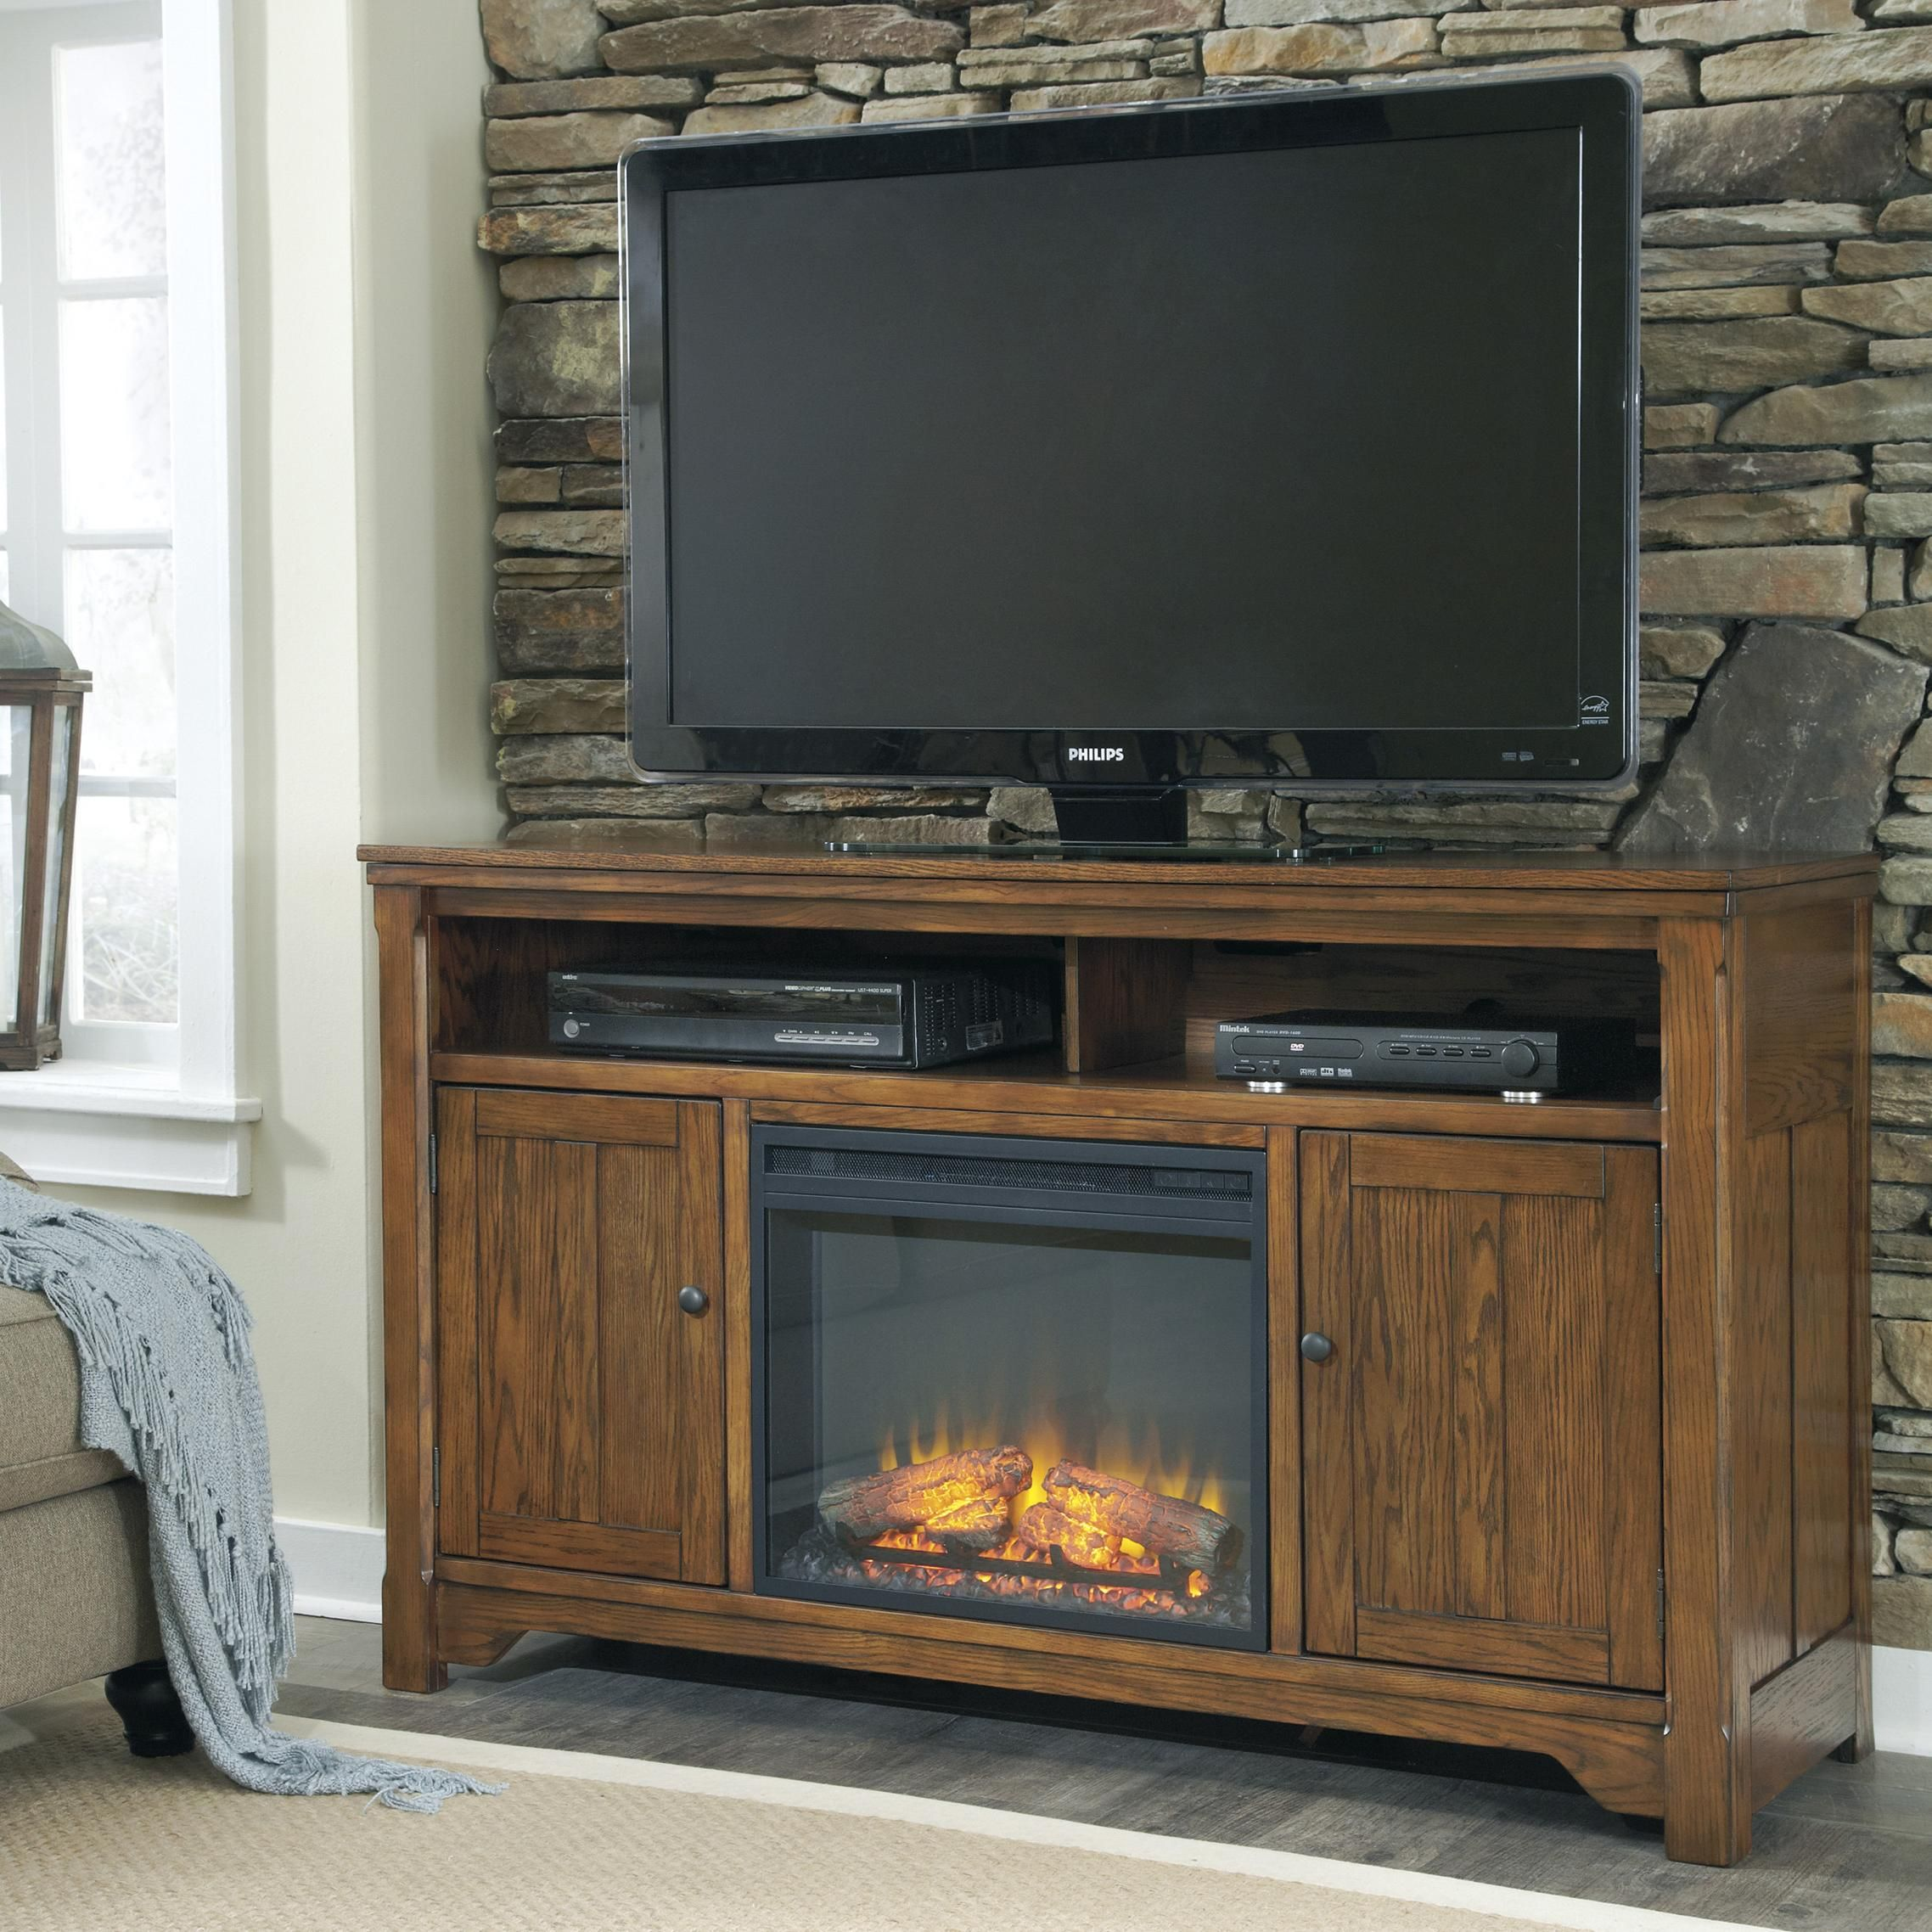 w product ashley wfireplace oh dealer store best stand frantin fireplace cupboard tv furniture stands mentor